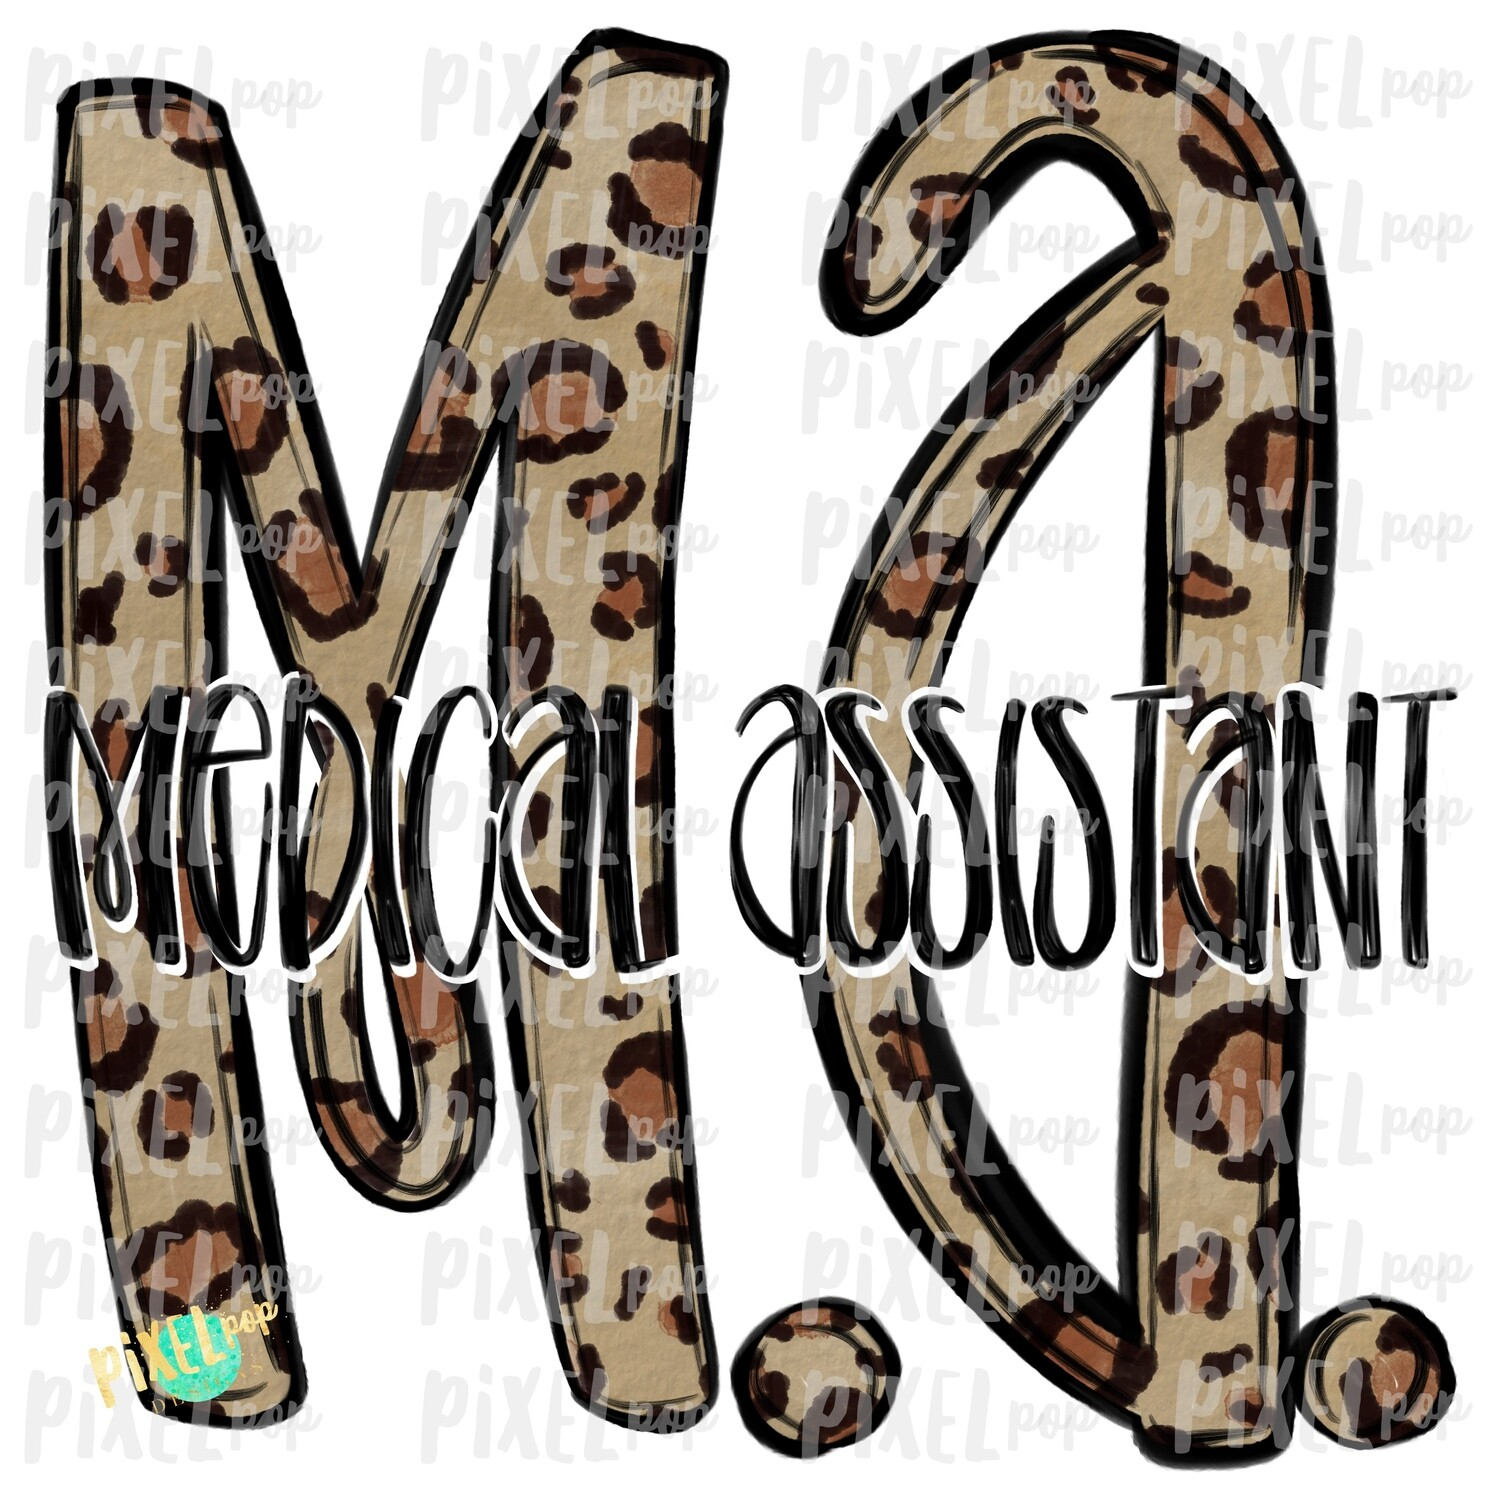 Medical Assistant MA Leopard Sublimation Design | Sublimation | Hand Drawn Art | Nursing PNG | Medical Art | Digital Download | Art Clipart